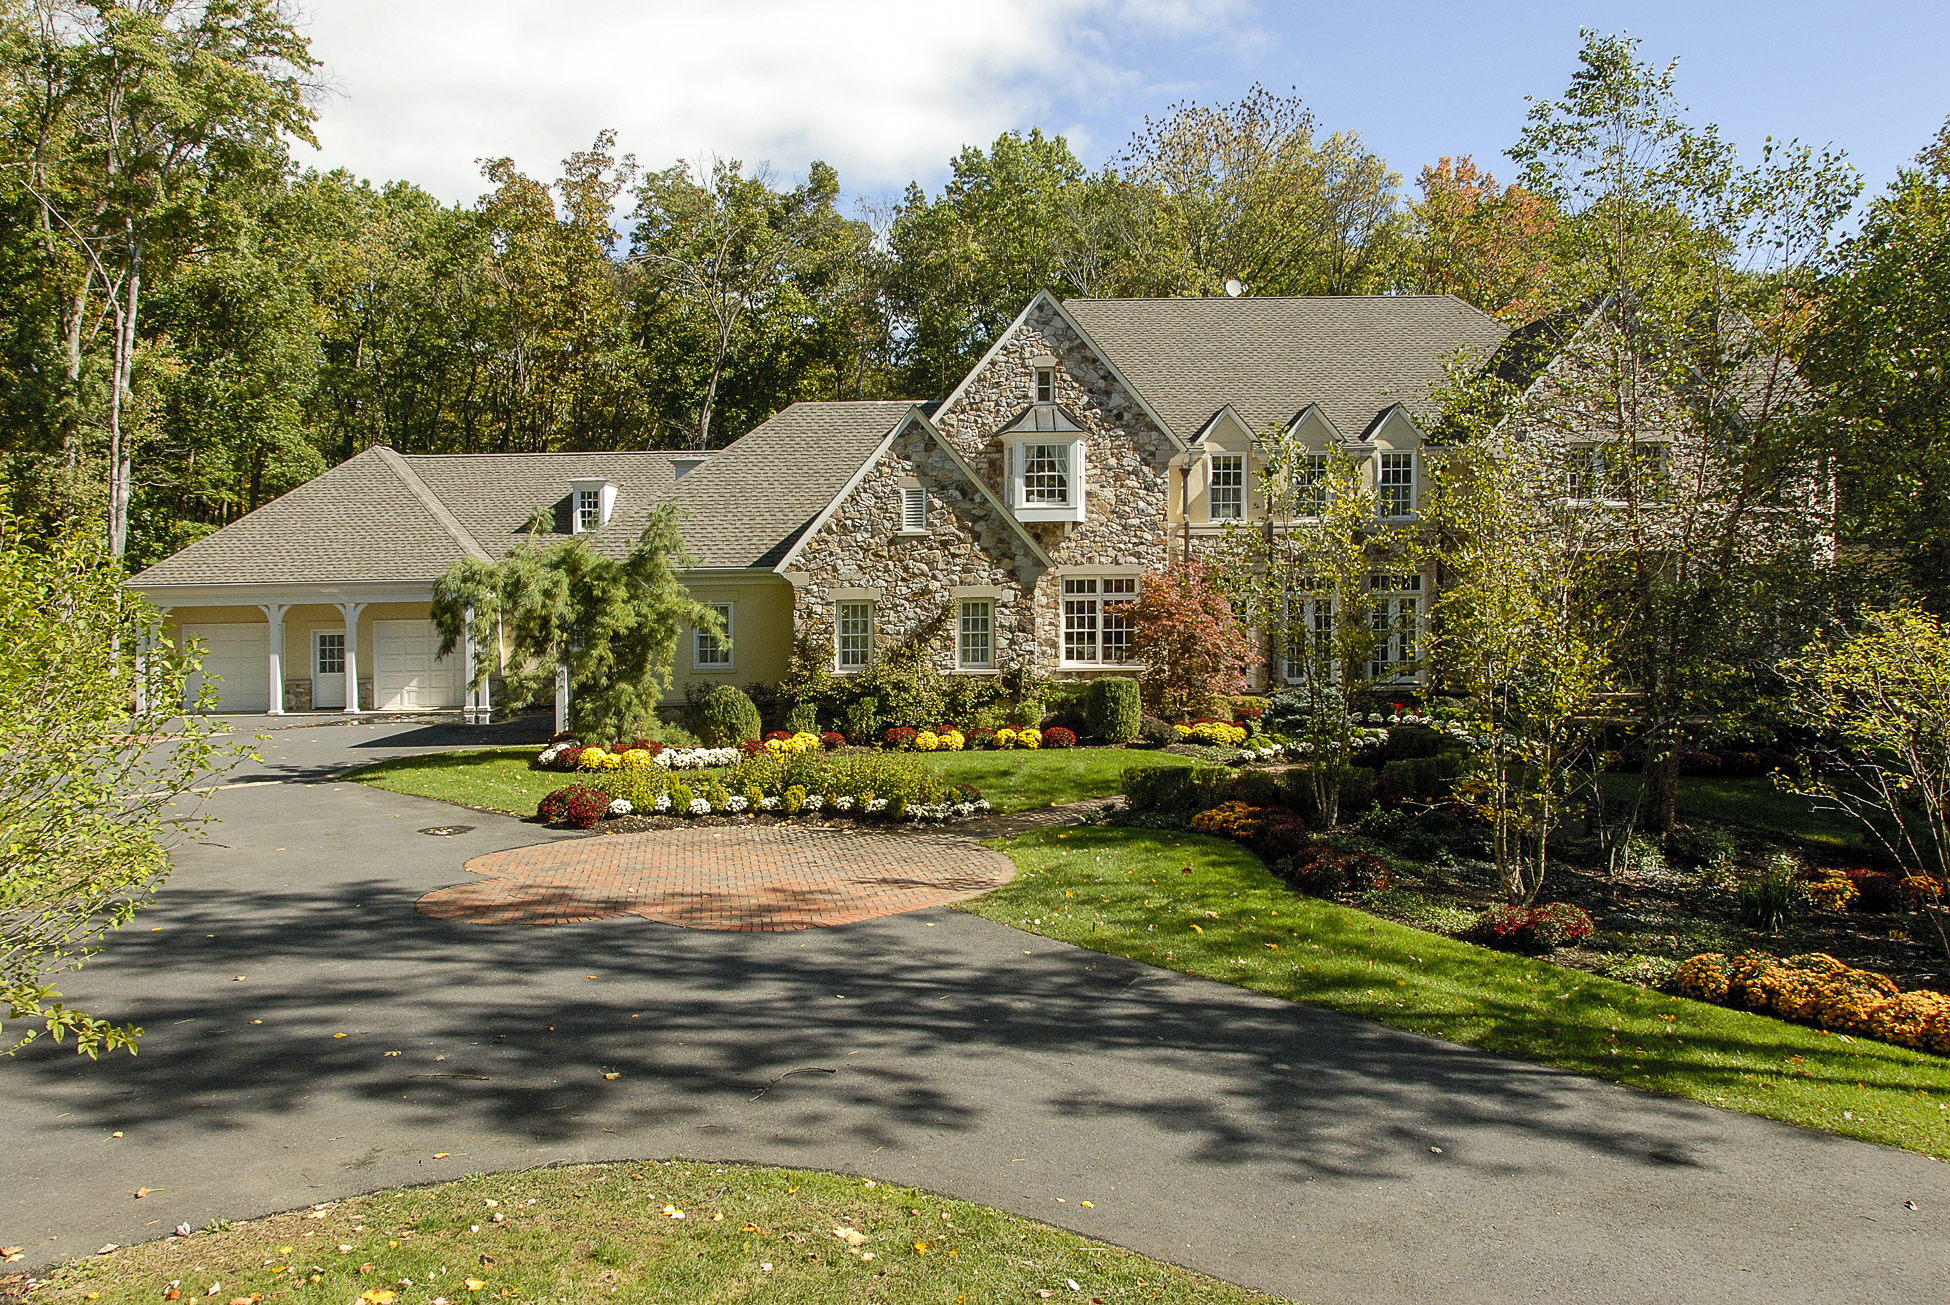 Villa per Vendita alle ore Magnificent Manor Home in Princeton's Coveted Rushbrook 27 Running Cedar Road Princeton, New Jersey, 08540 Stati Uniti